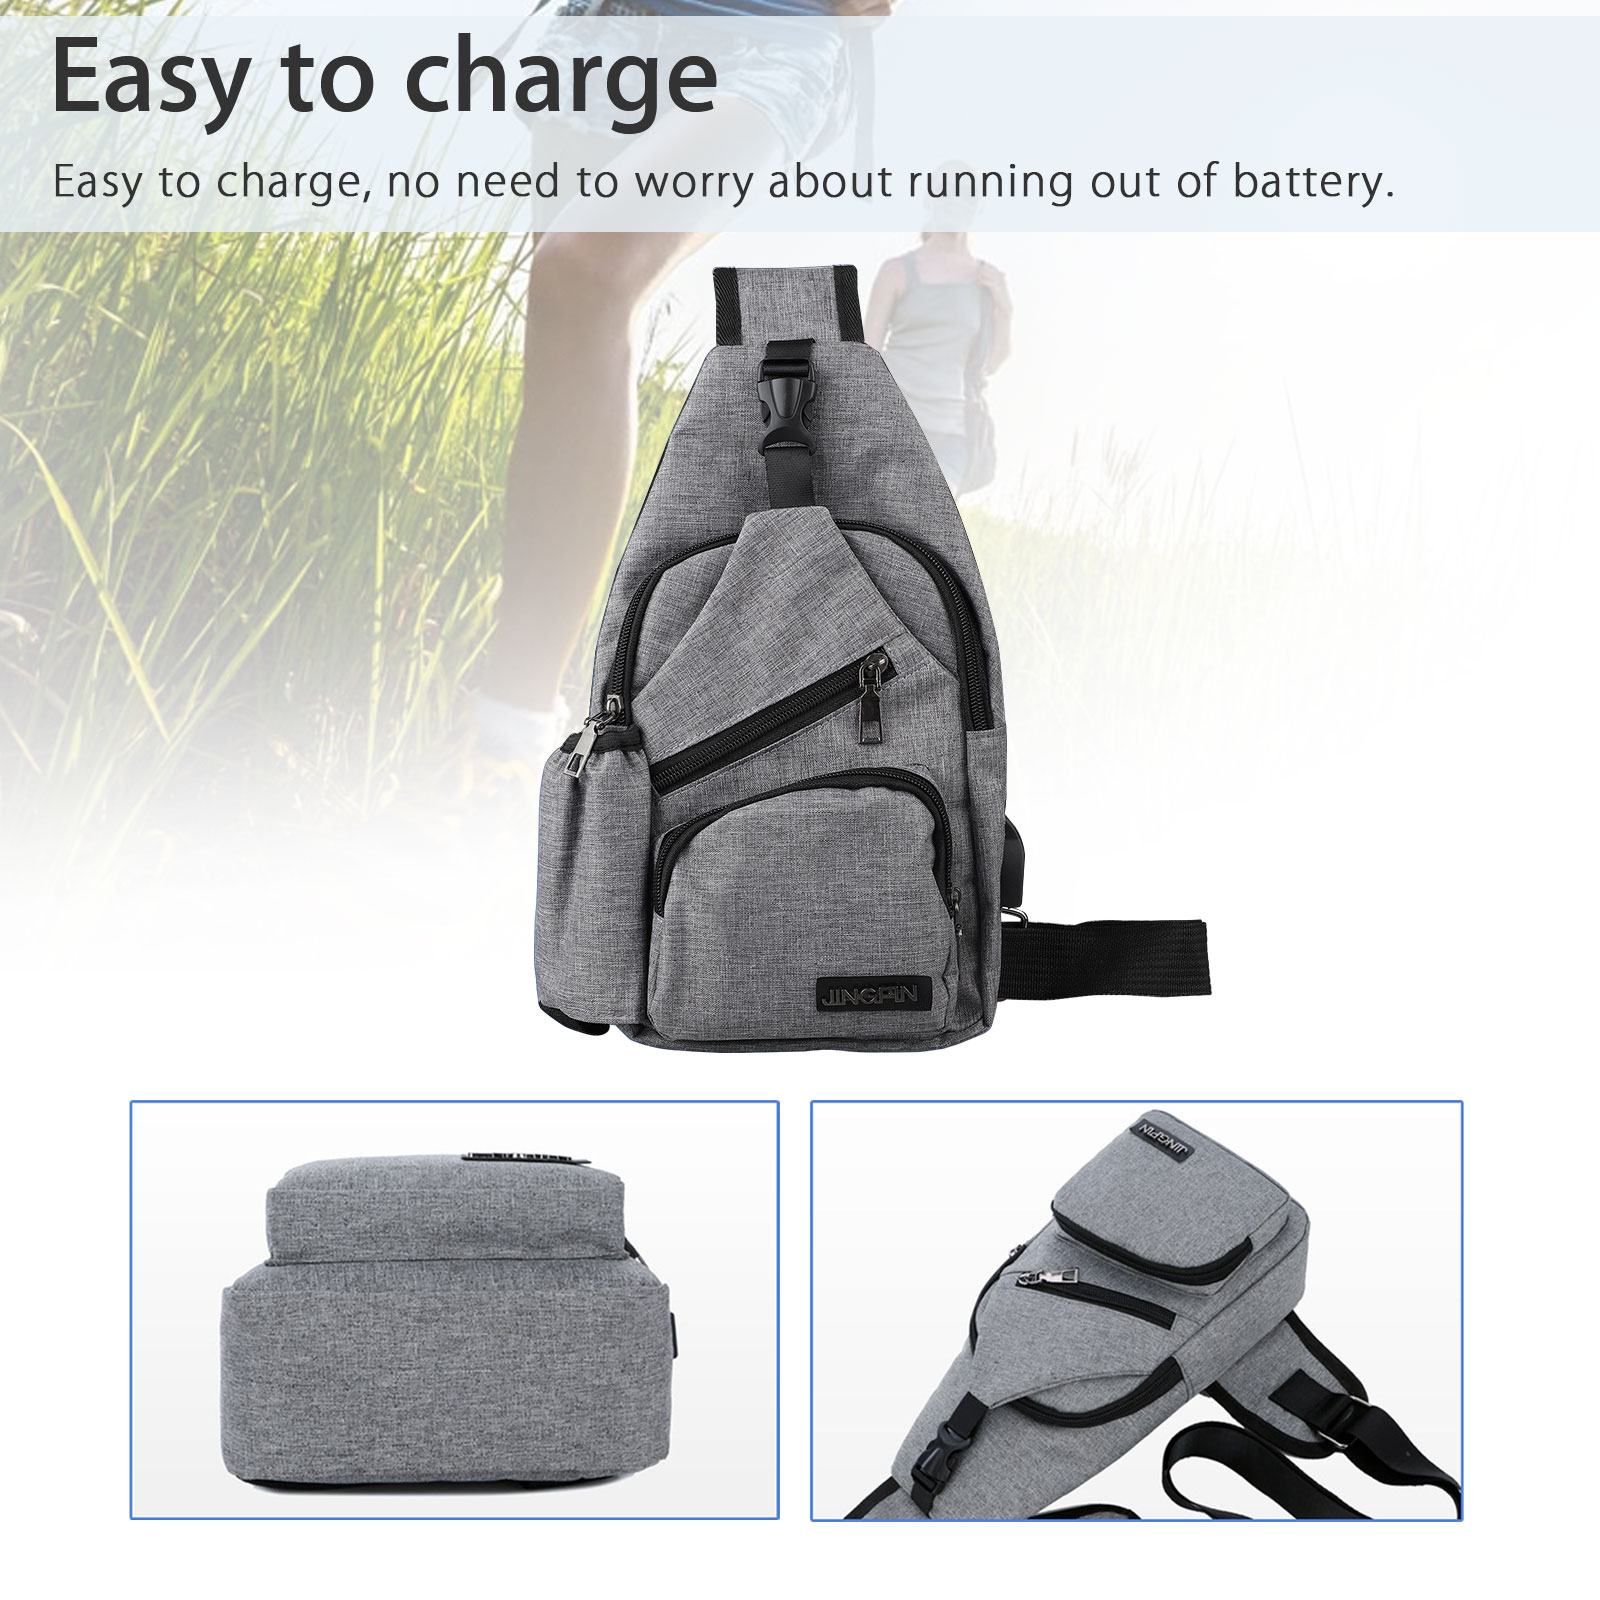 Backpack-Crossbody-Travel-Bag-For-Nintendo-Switch-Console-Joy-Cons-Accessories thumbnail 6